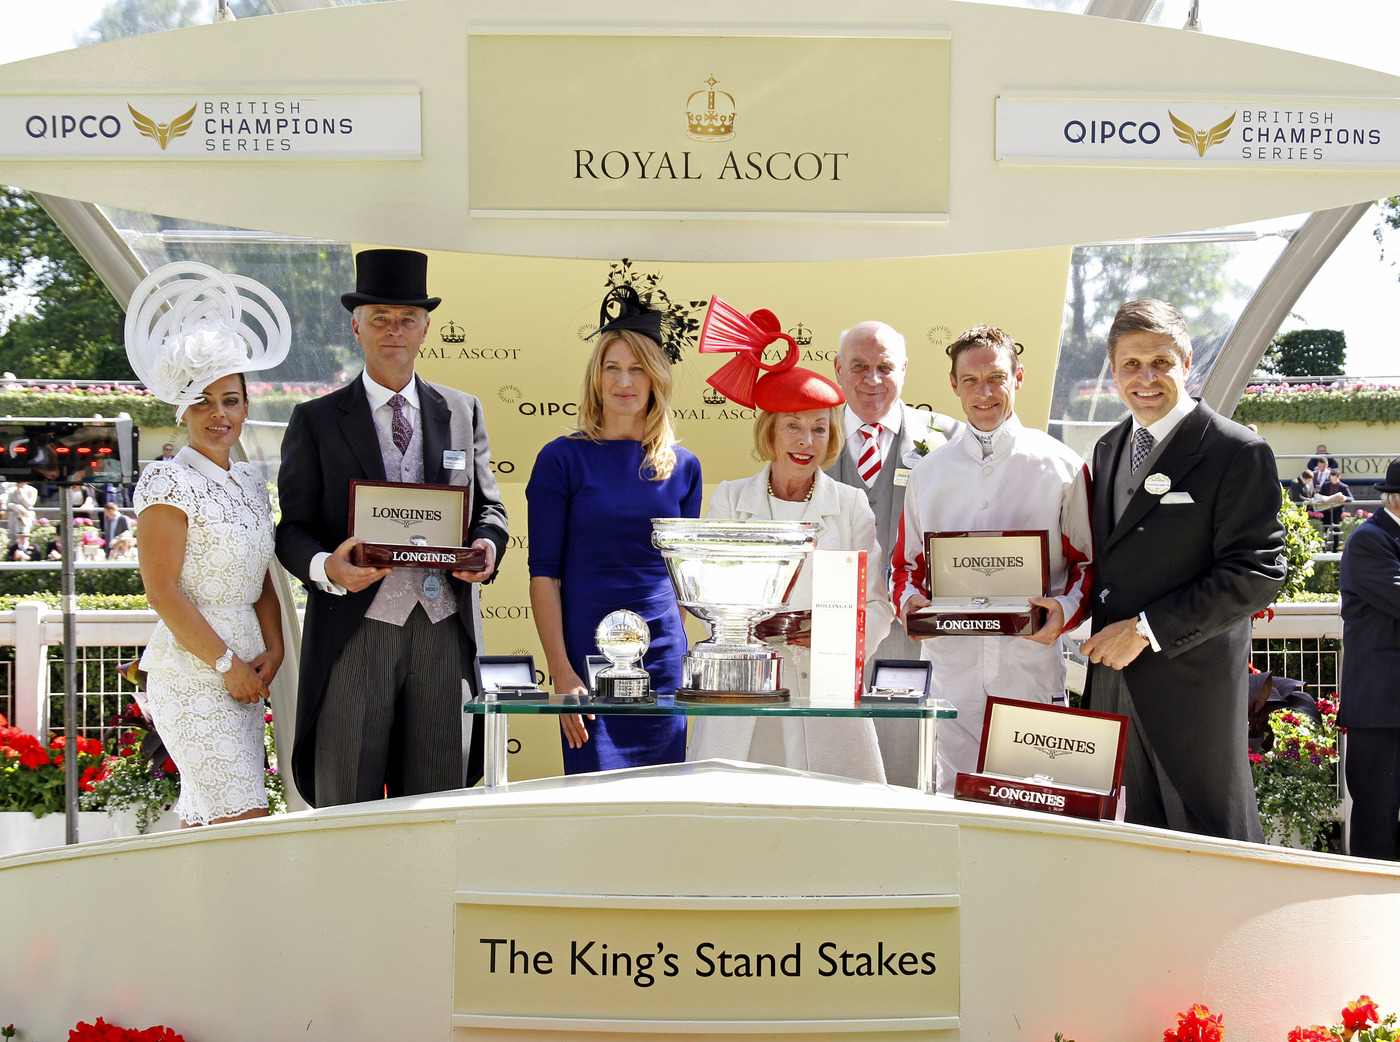 Longines Flat Racing Event: Tennis Legend Stefanie Graf joins Longines at Royal Ascot for an English Day at the Races 5